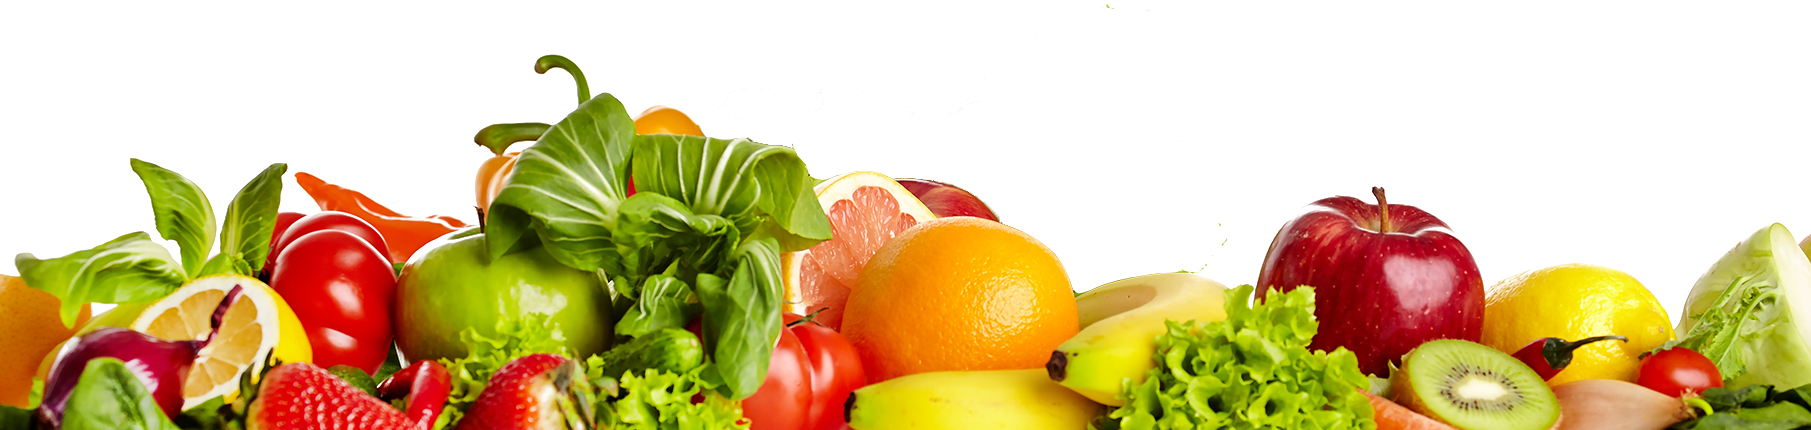 Fruits and veggies png. Healthy food transparent free